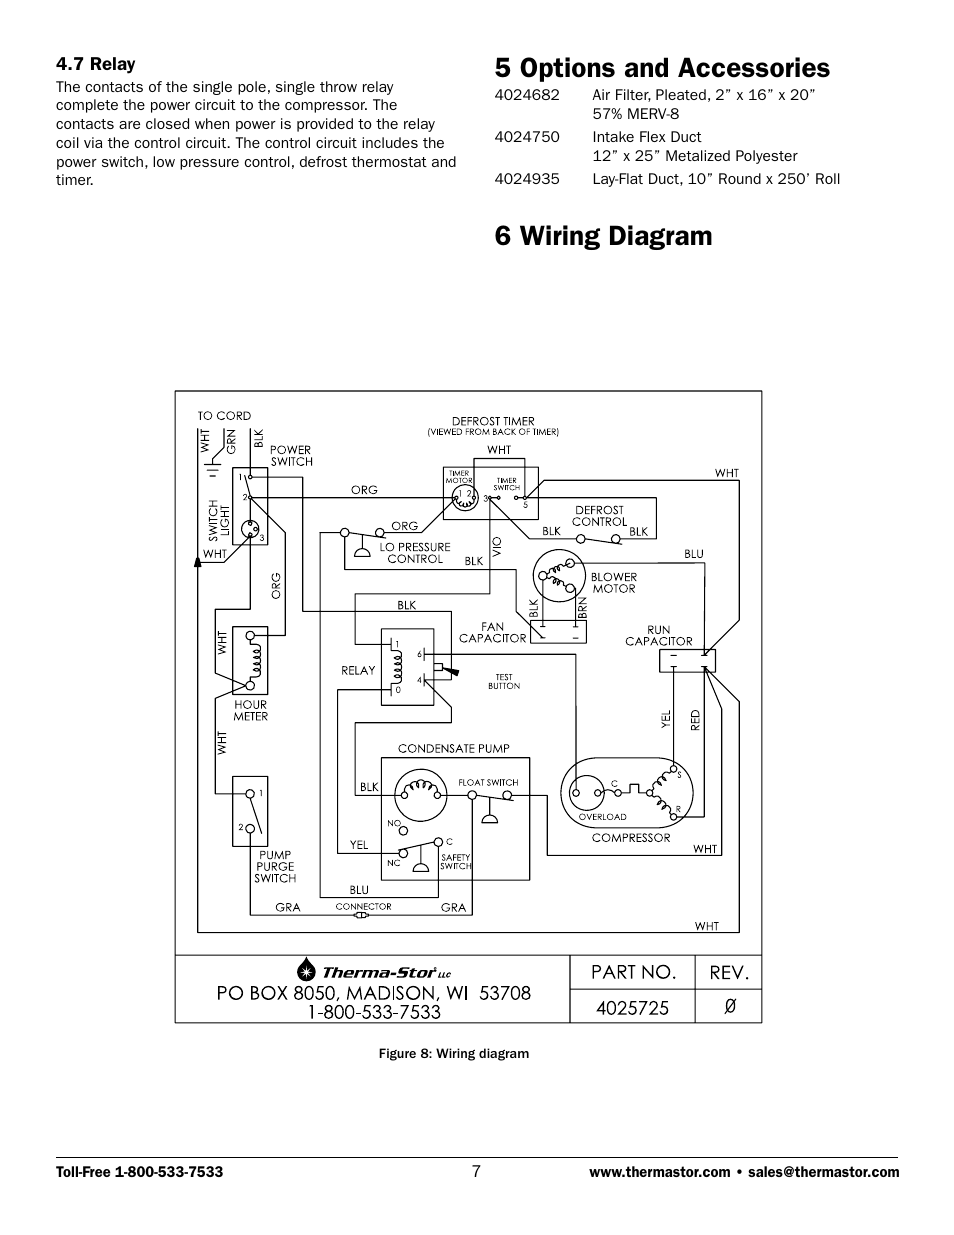 hight resolution of 5 options and accessories 6 wiring diagram therma stor products phoenix air valve wiring diagram phoenix wiring diagram